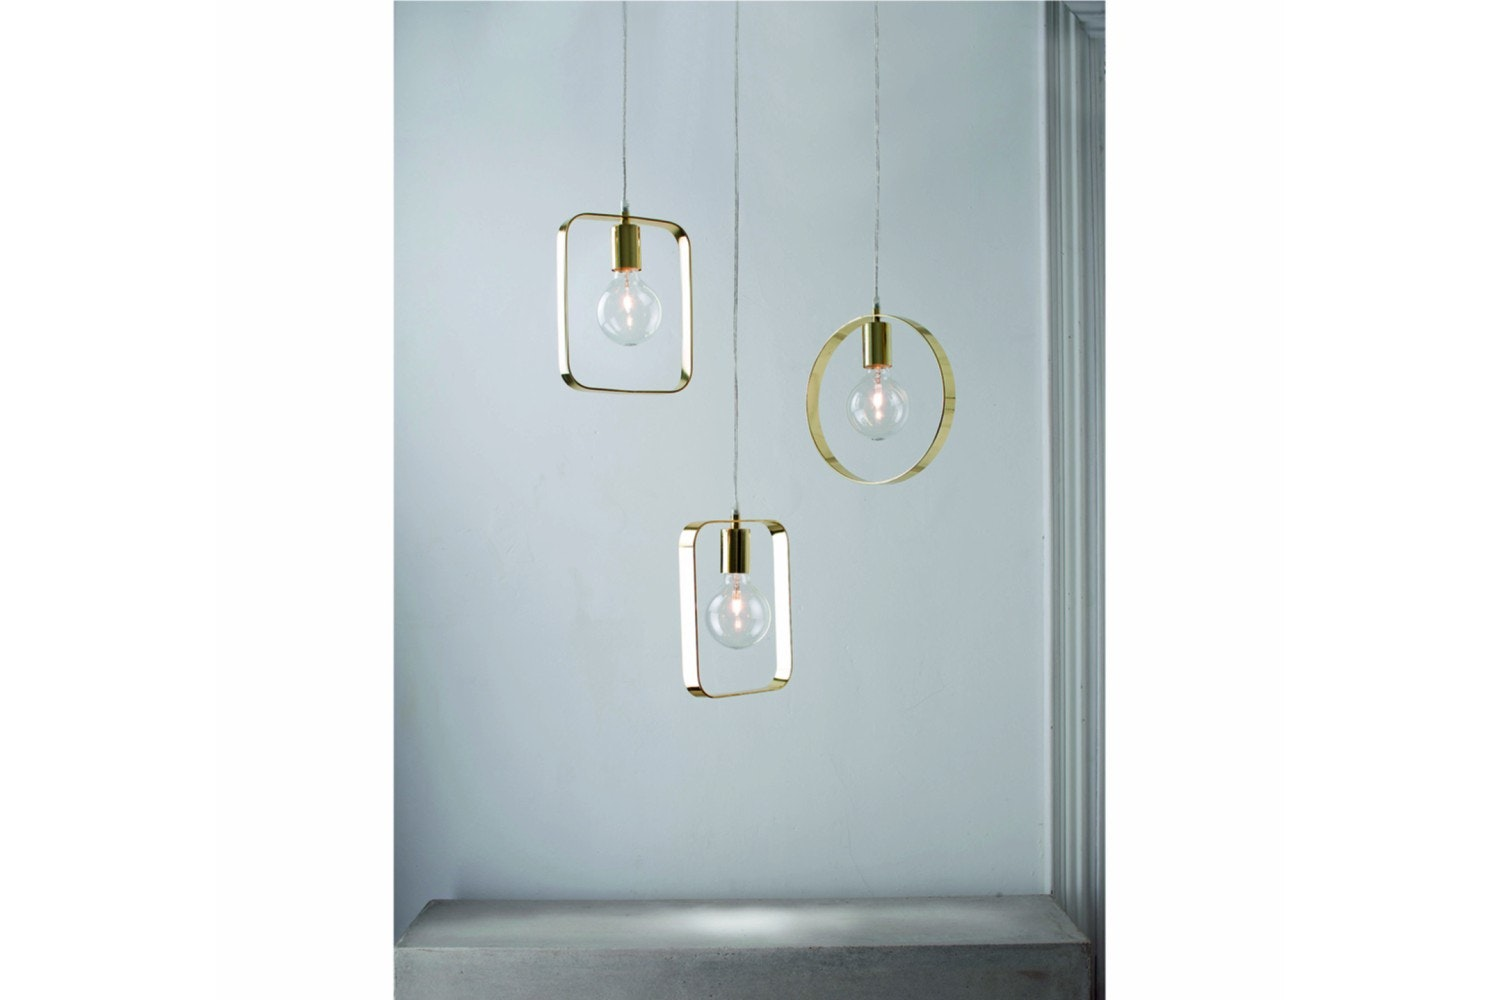 Assorted Rectangular and Round Hanglamp in Gold Metal